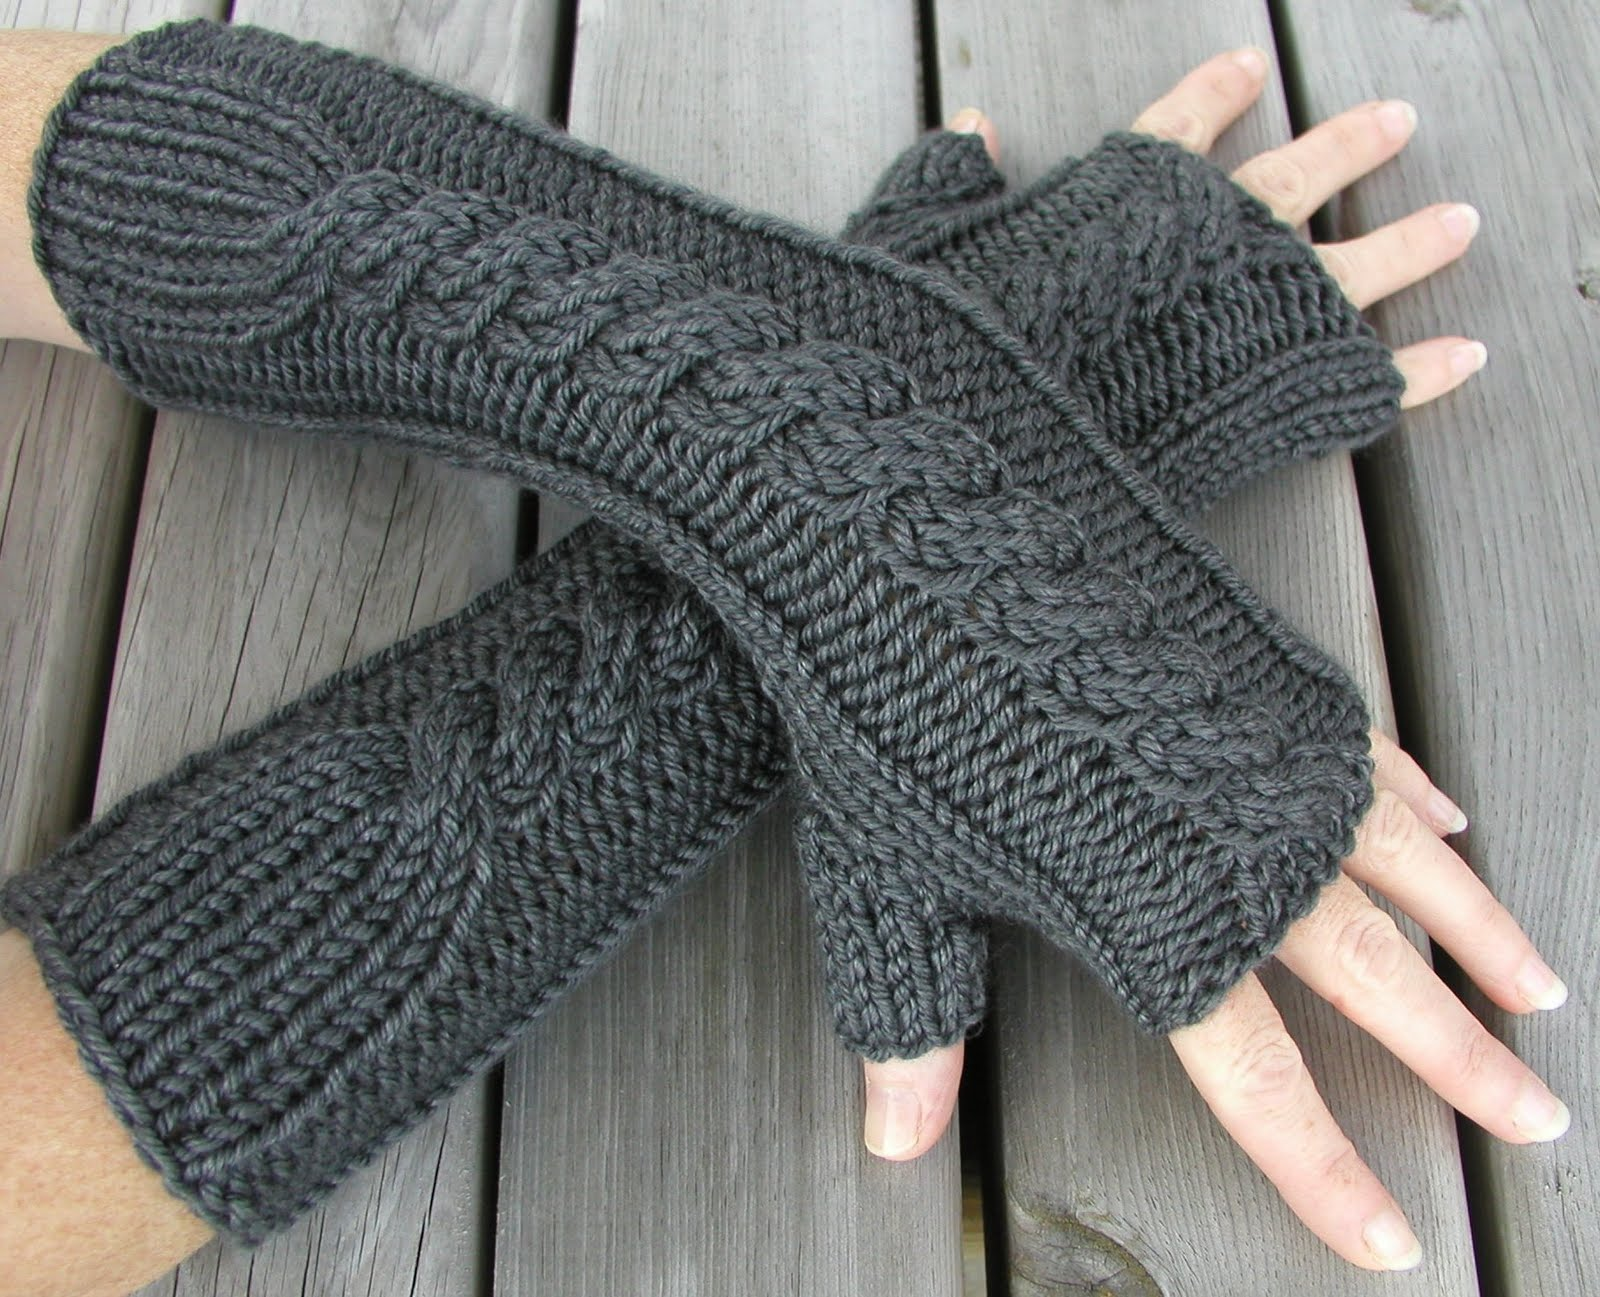 Knitting Pattern Of Gloves : Hand Knitted Things Patterns